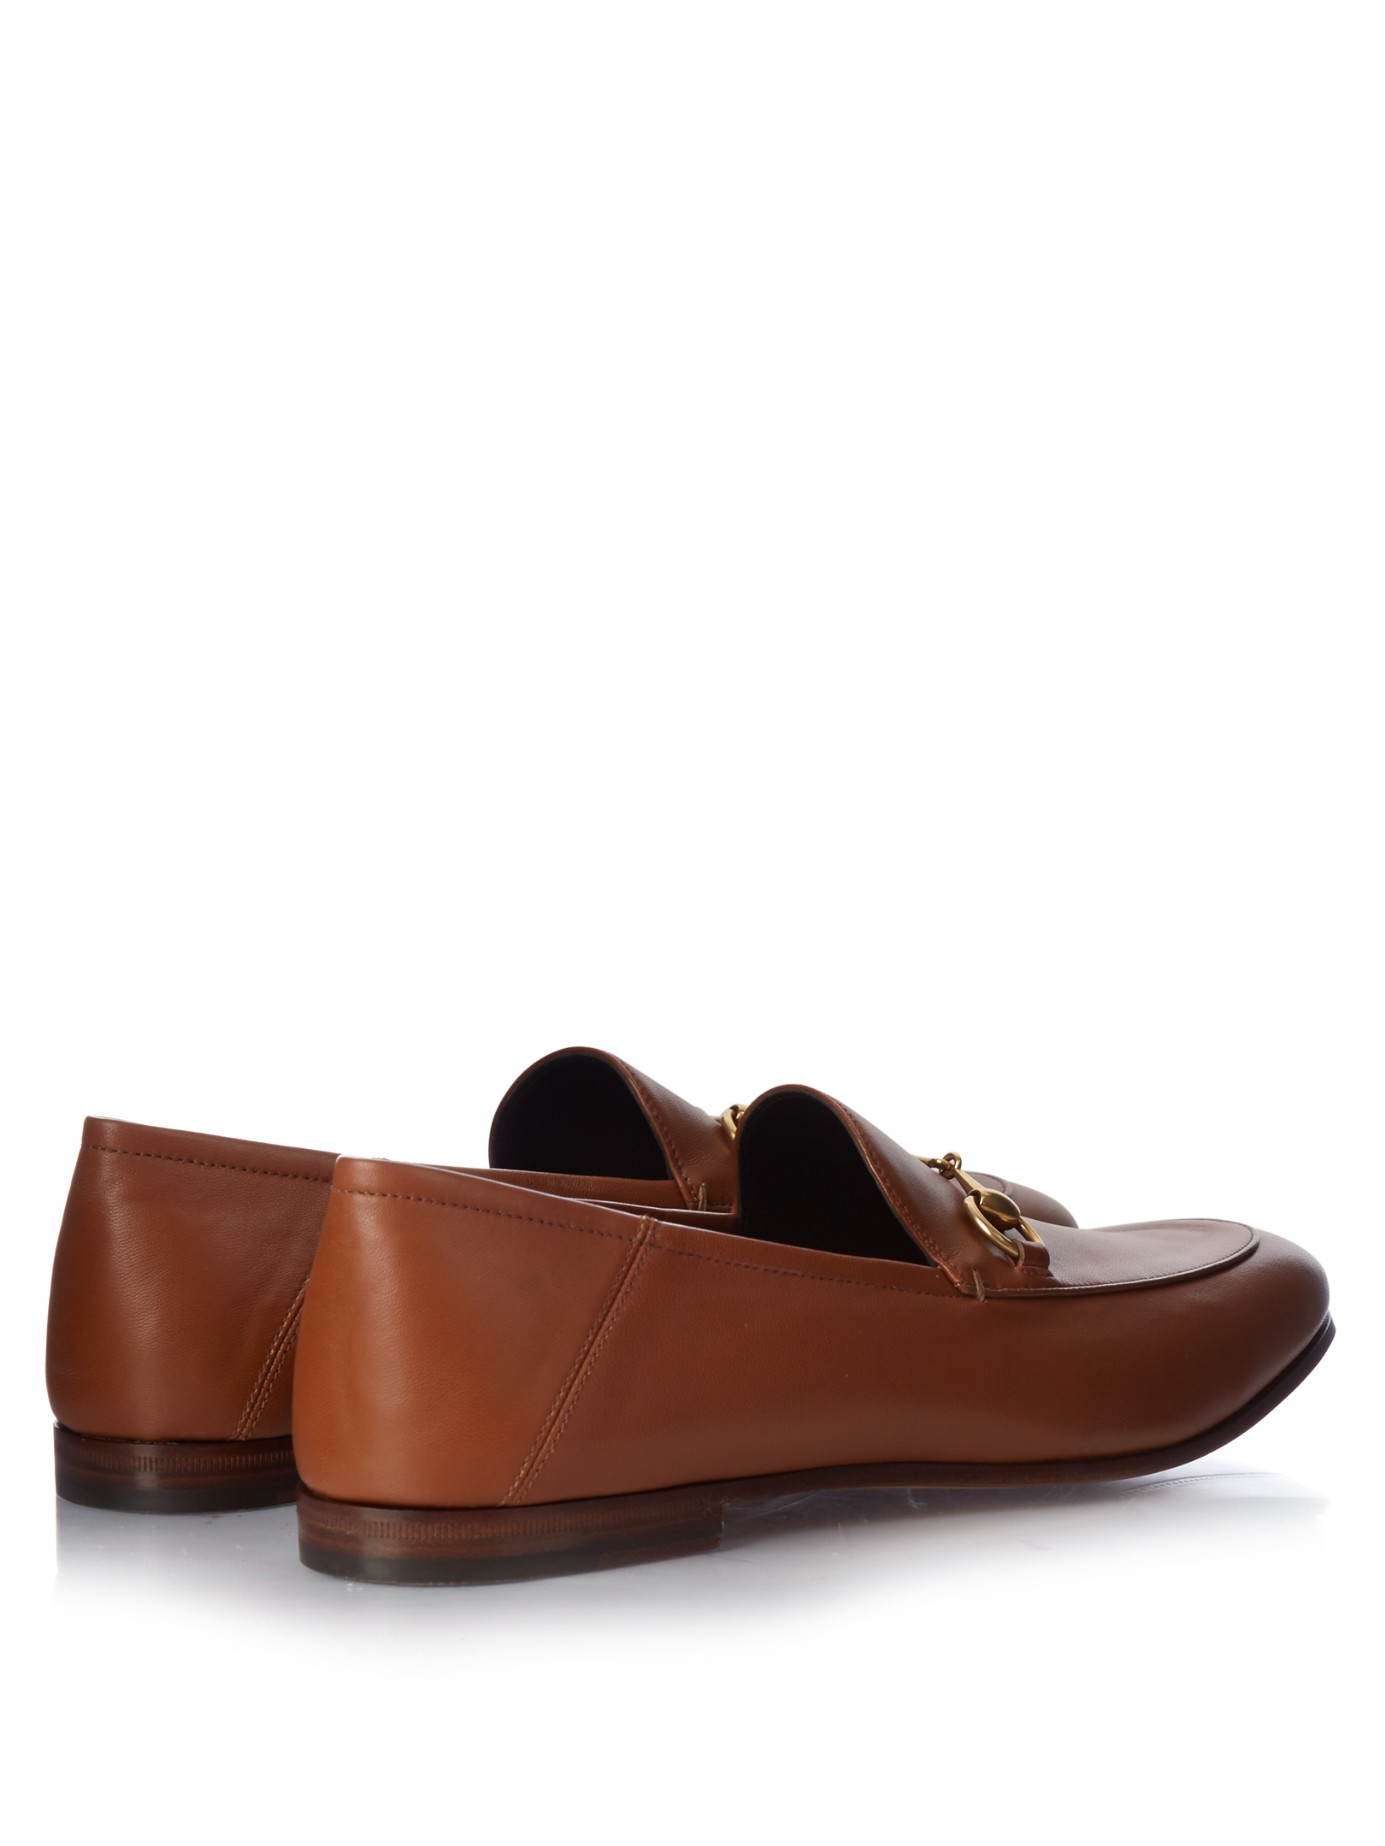 gucci shoes for men price. gallery gucci shoes for men price s